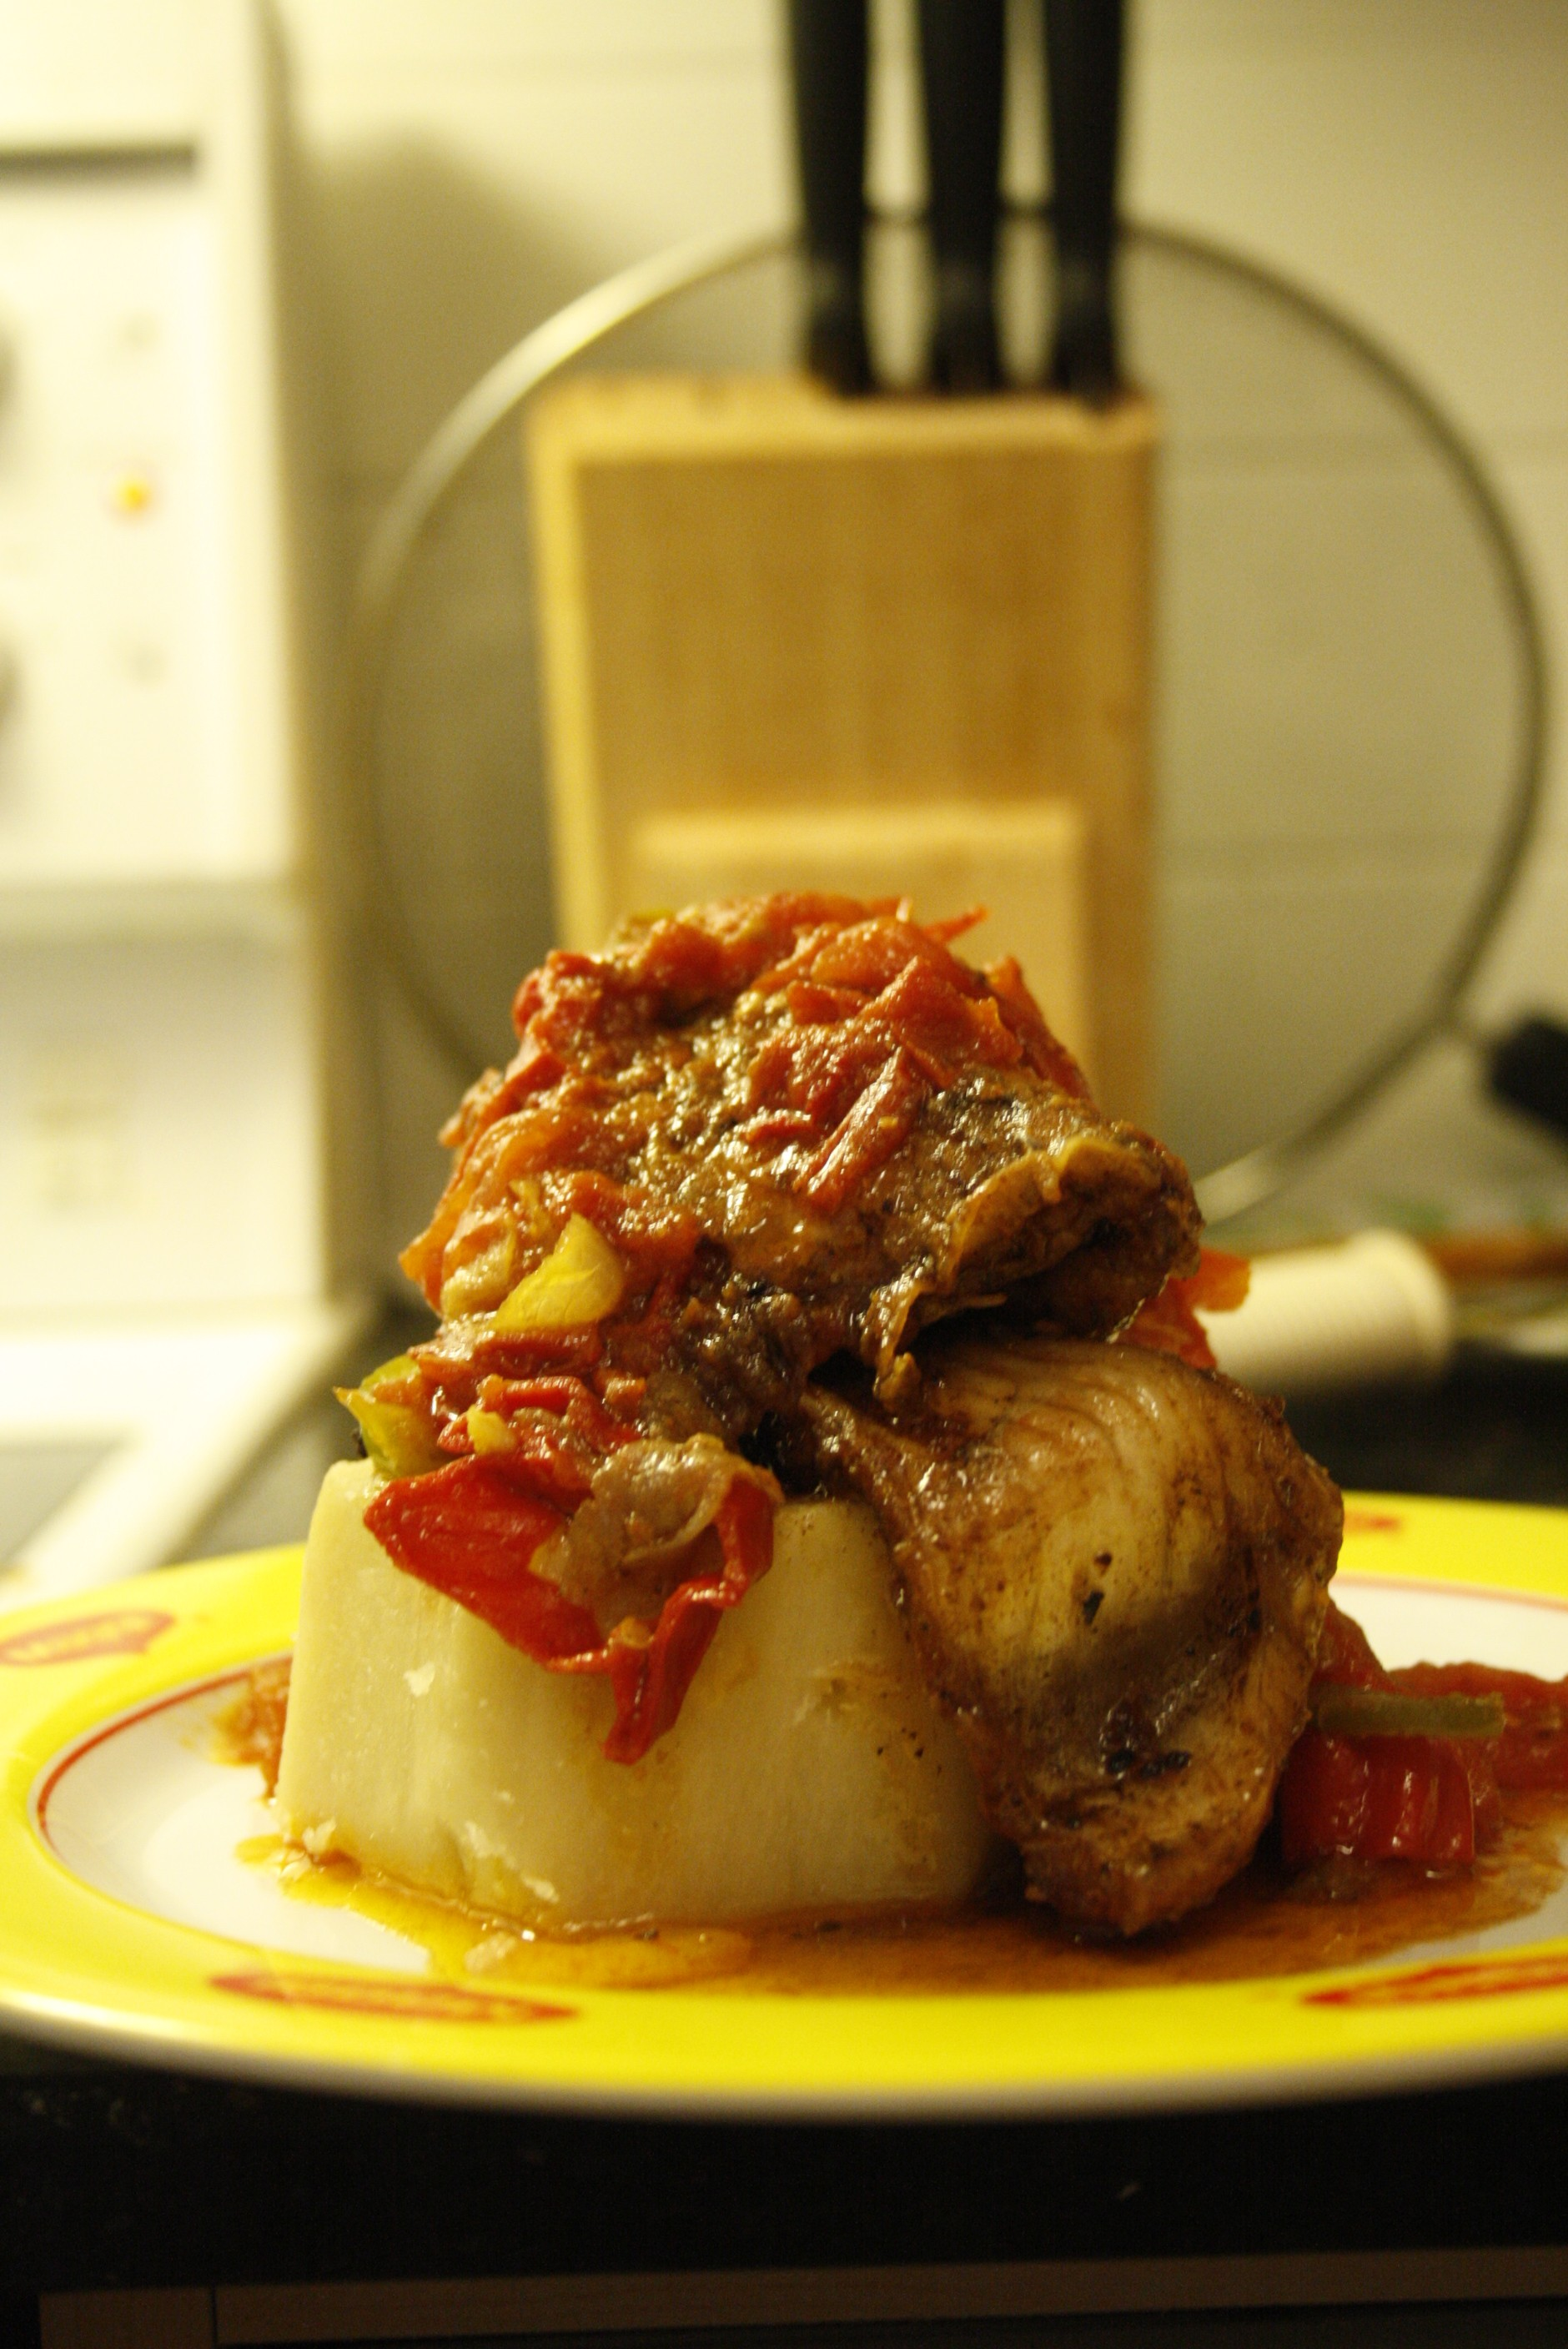 Recipe for the yam and fish sauce afrolems nigerian food for Recipes using fish sauce